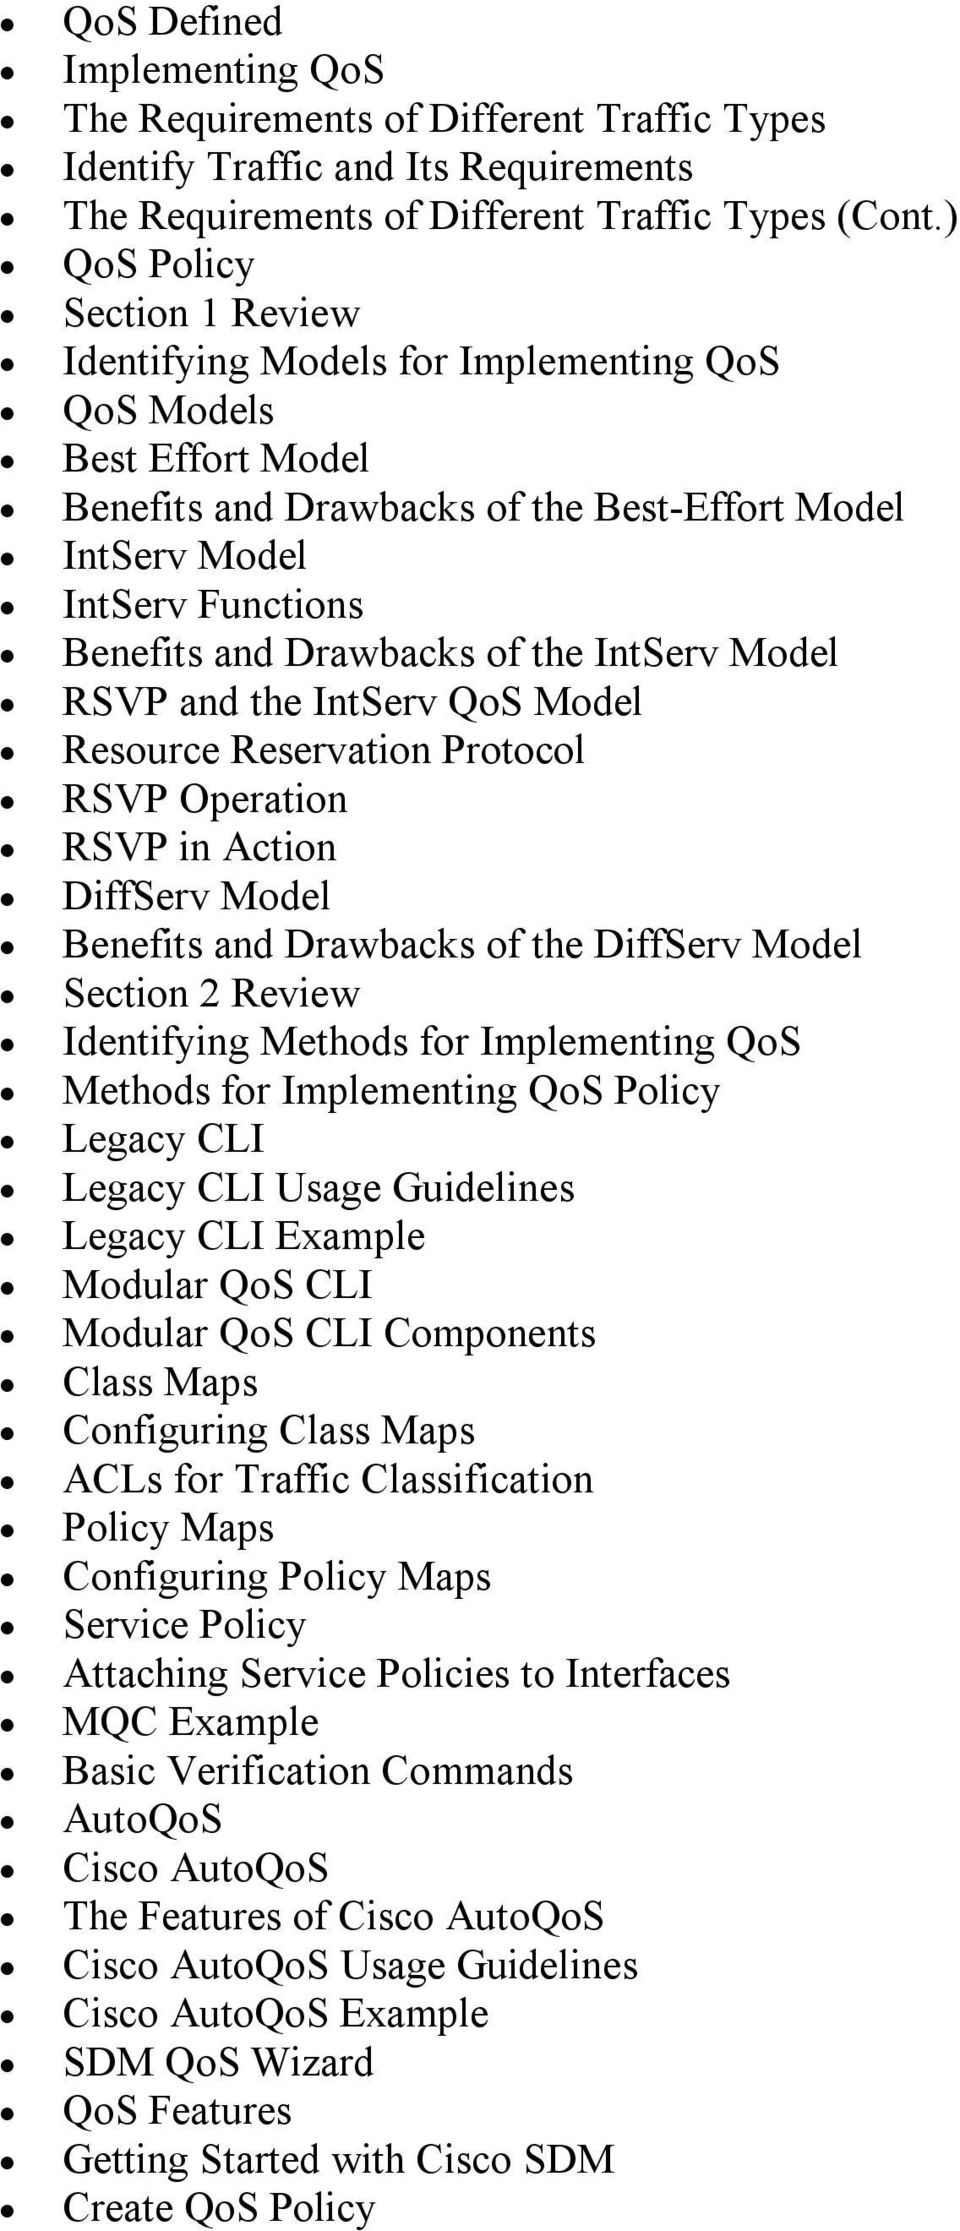 Drawbacks of the IntServ Model RSVP and the IntServ QoS Model Resource Reservation Protocol RSVP Operation RSVP in Action DiffServ Model Benefits and Drawbacks of the DiffServ Model Section 2 Review